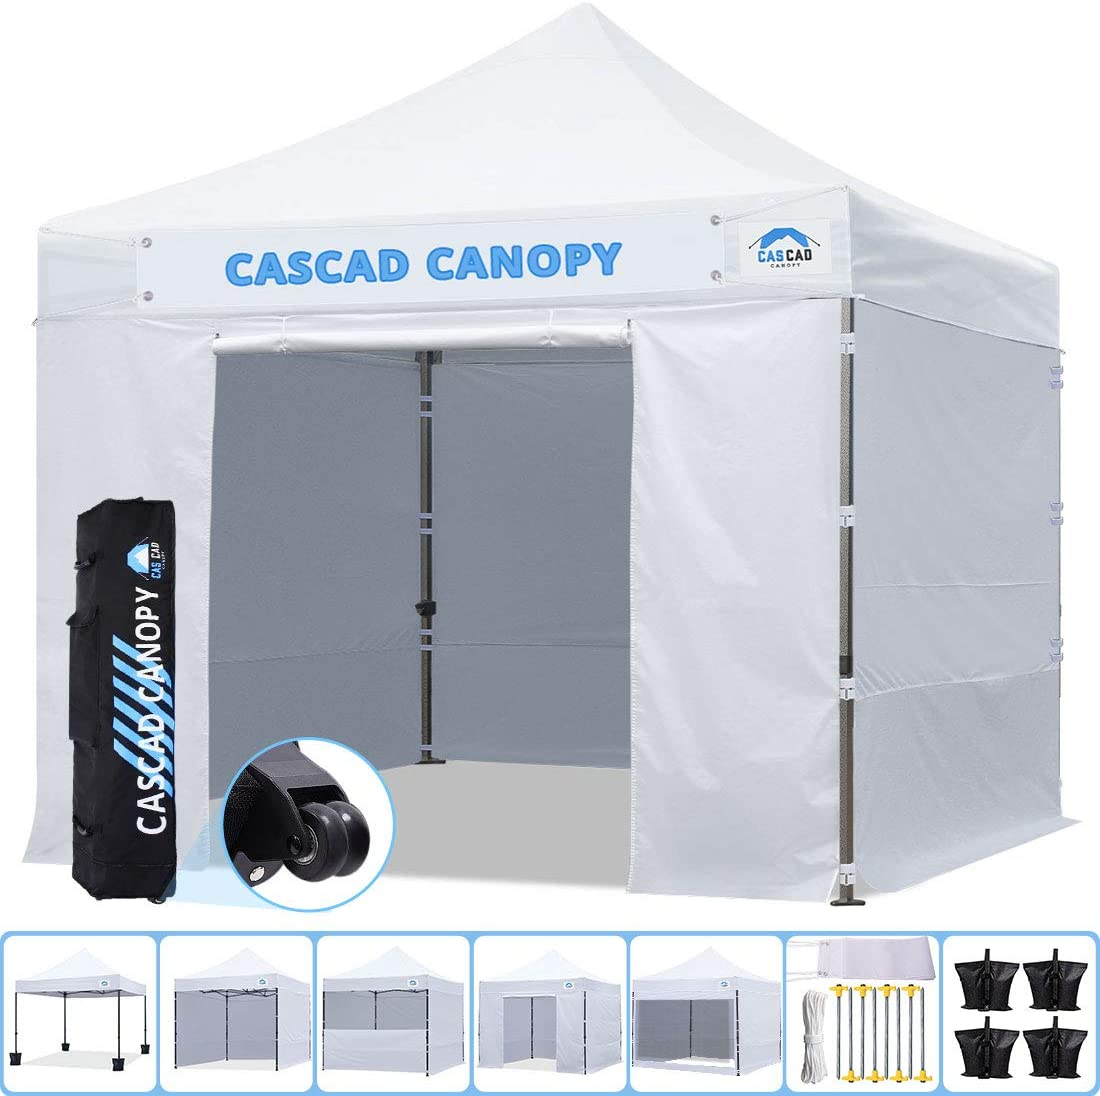 CASCAD CANOPY 10 x10 Ez Pop-Up Canopy Commercial Instant Tent Shelter with DIY Banner, Heavy Duty Roller Bag, 4 Removable Sidewalls, 10ft Screen Netting and Half Wall, 4 Weight Bags, White